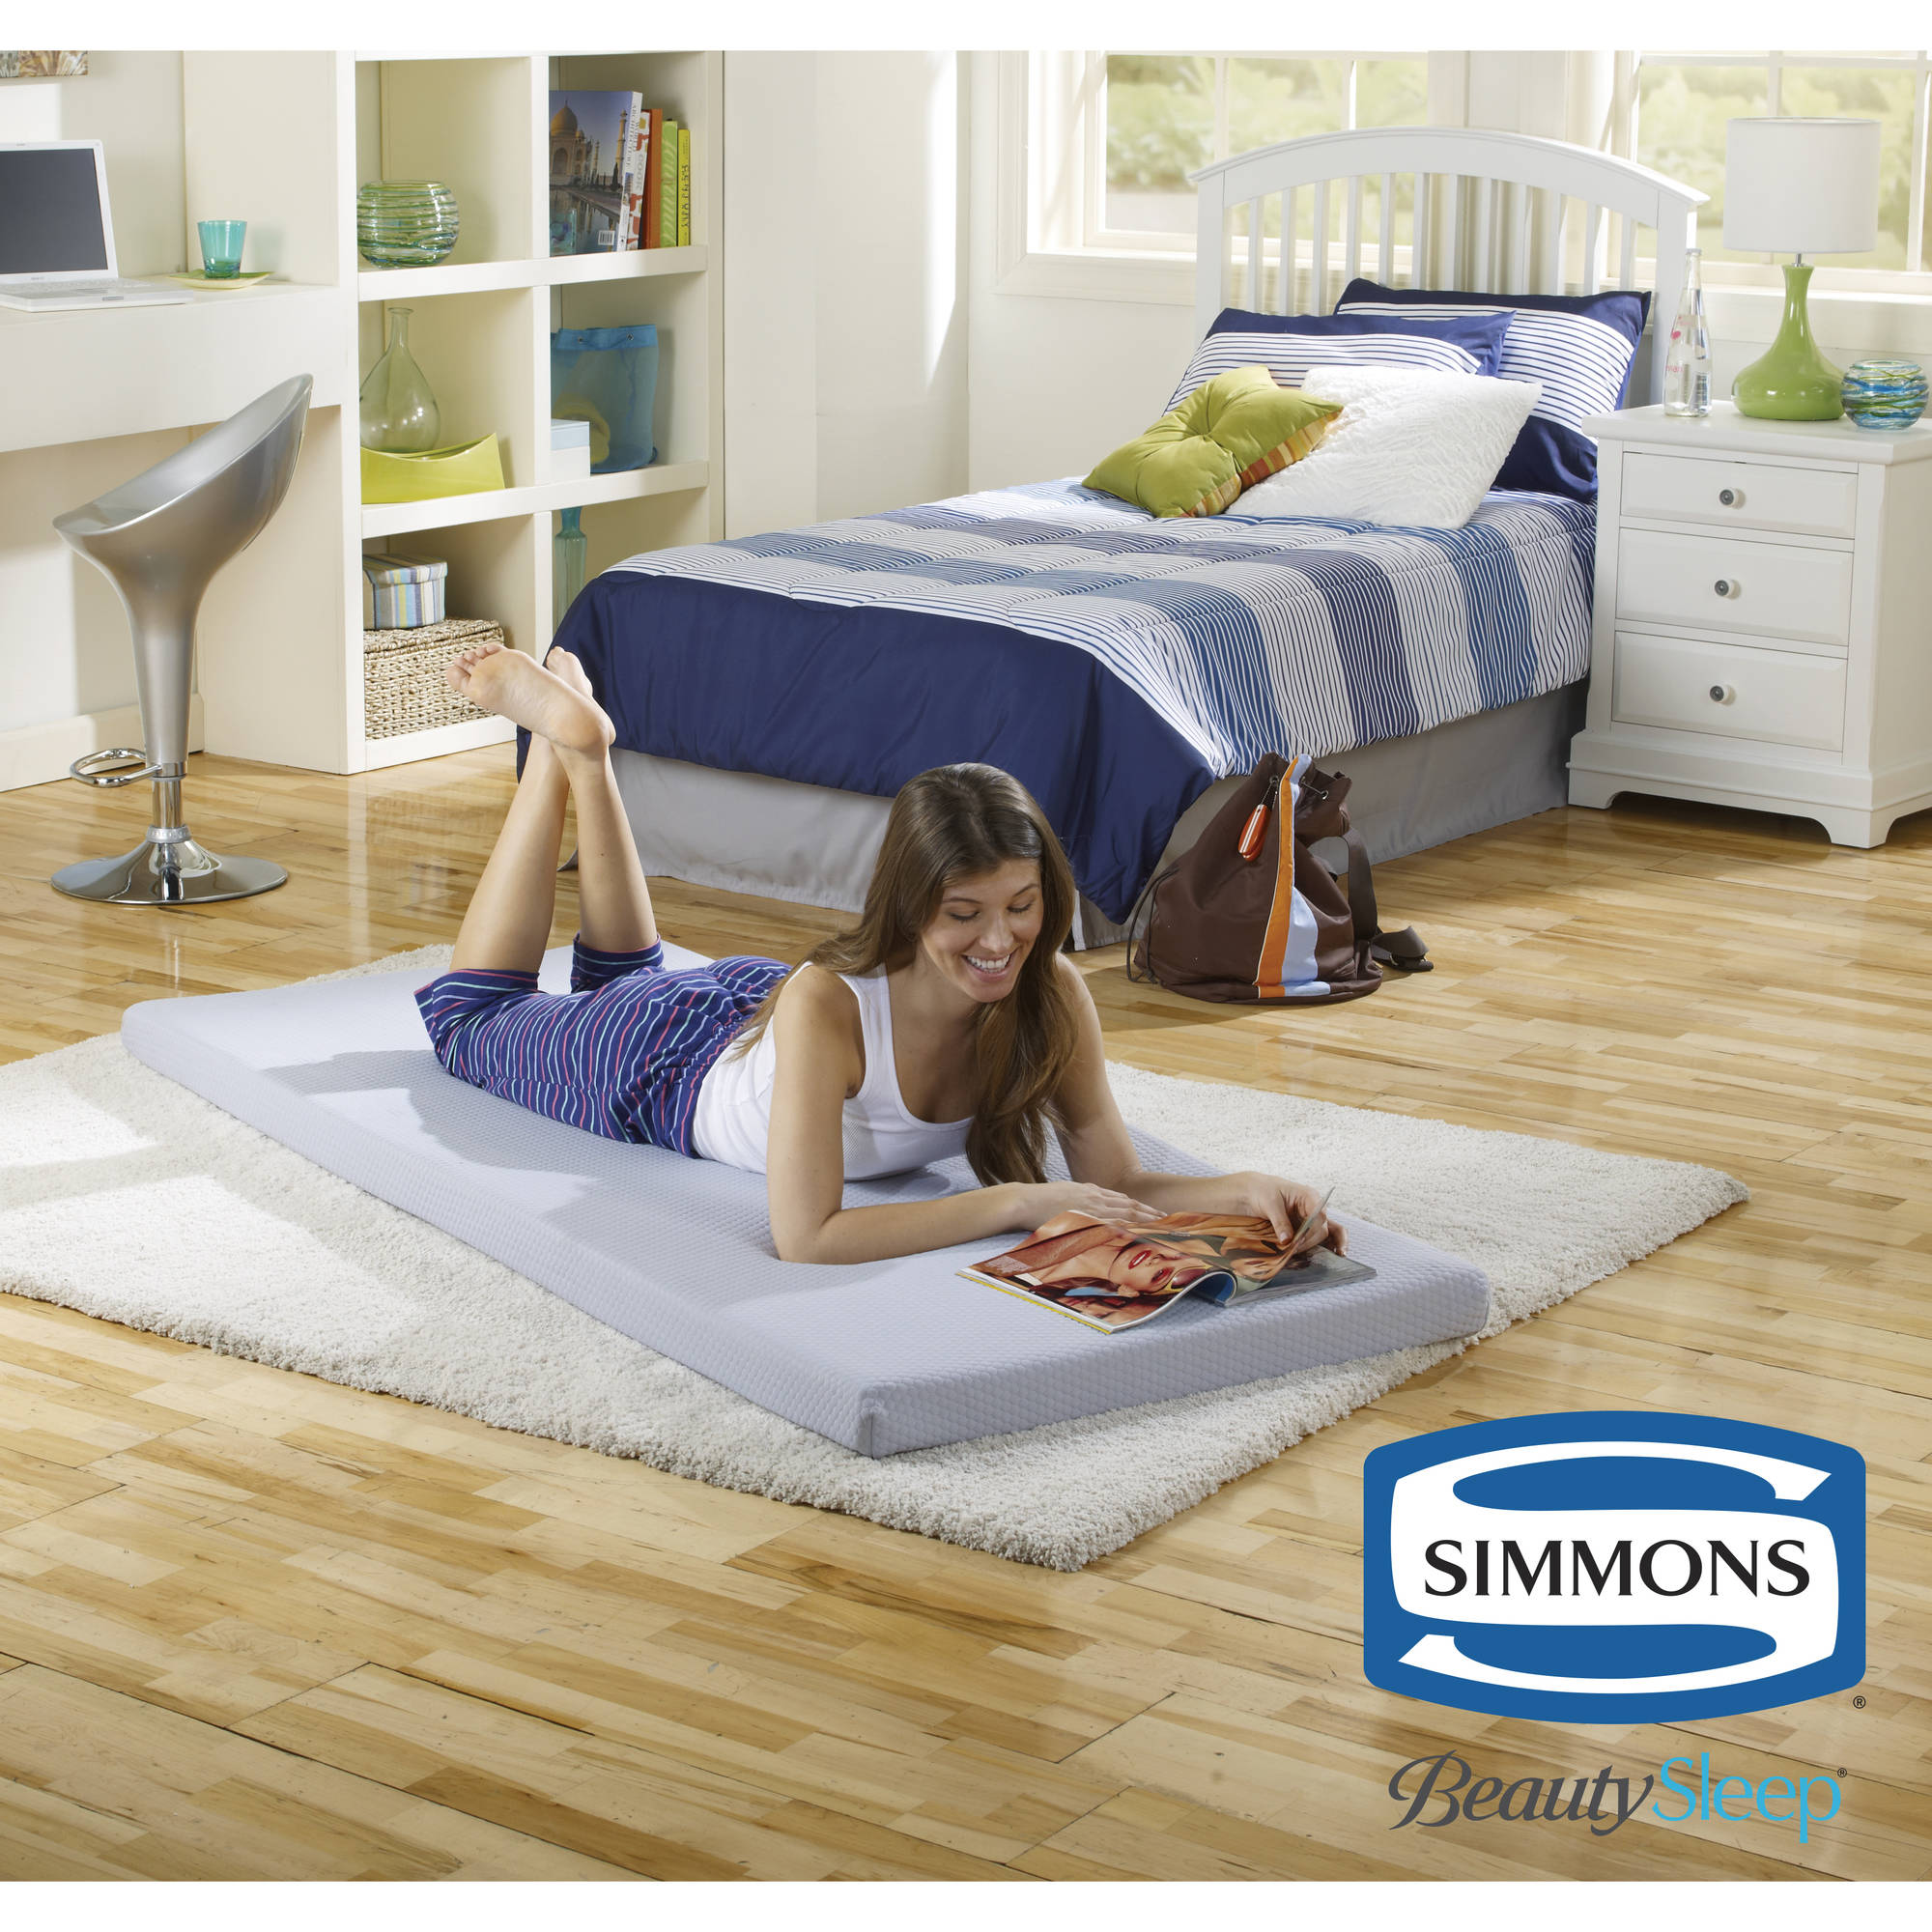 Beds Memory Foam Mattress Simmons Beautysleep Siesta Twin Memory Foam Guest Roll Up Extra Portable Mattress Bed